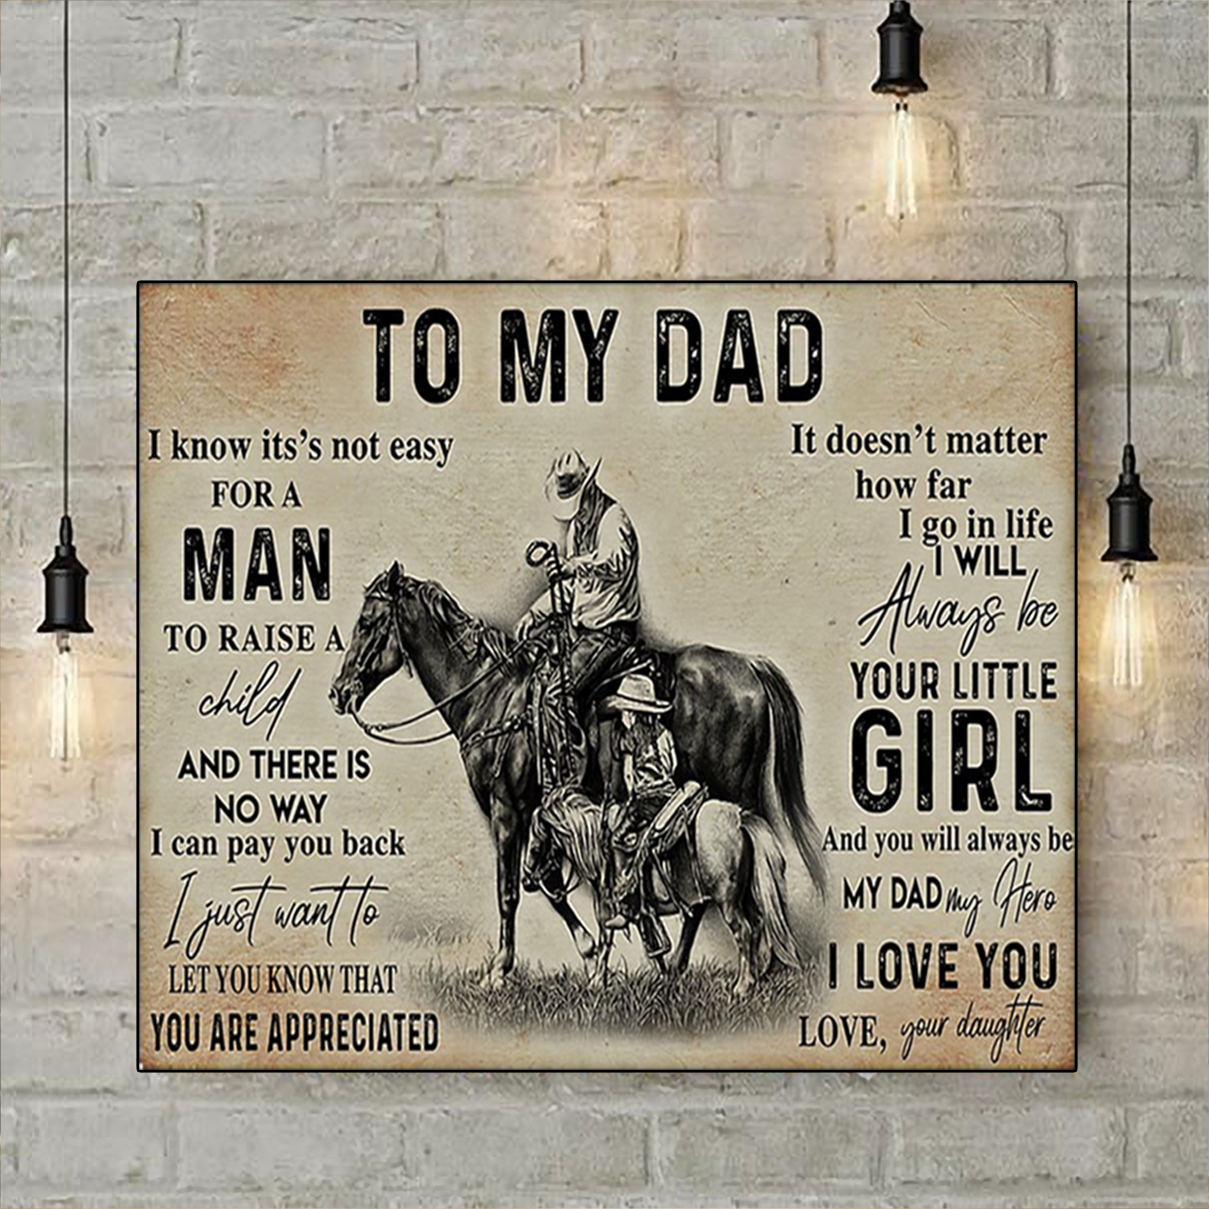 Cowgirl to my dad your daughter poster A1